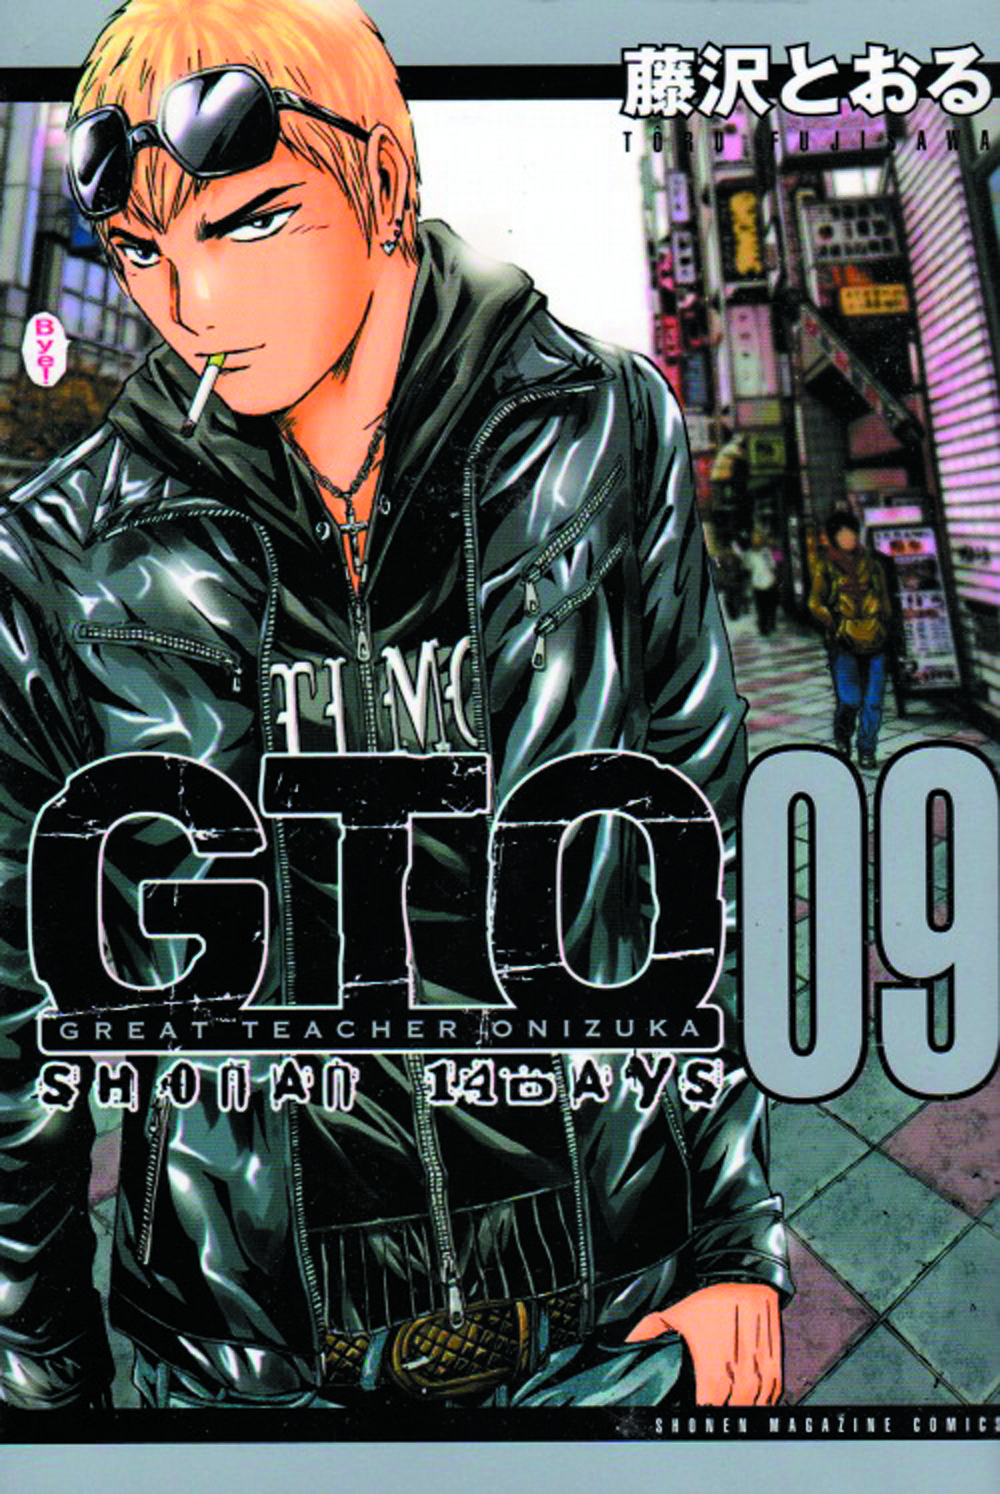 GTO 14 DAYS IN SHONAN GN VOL 09